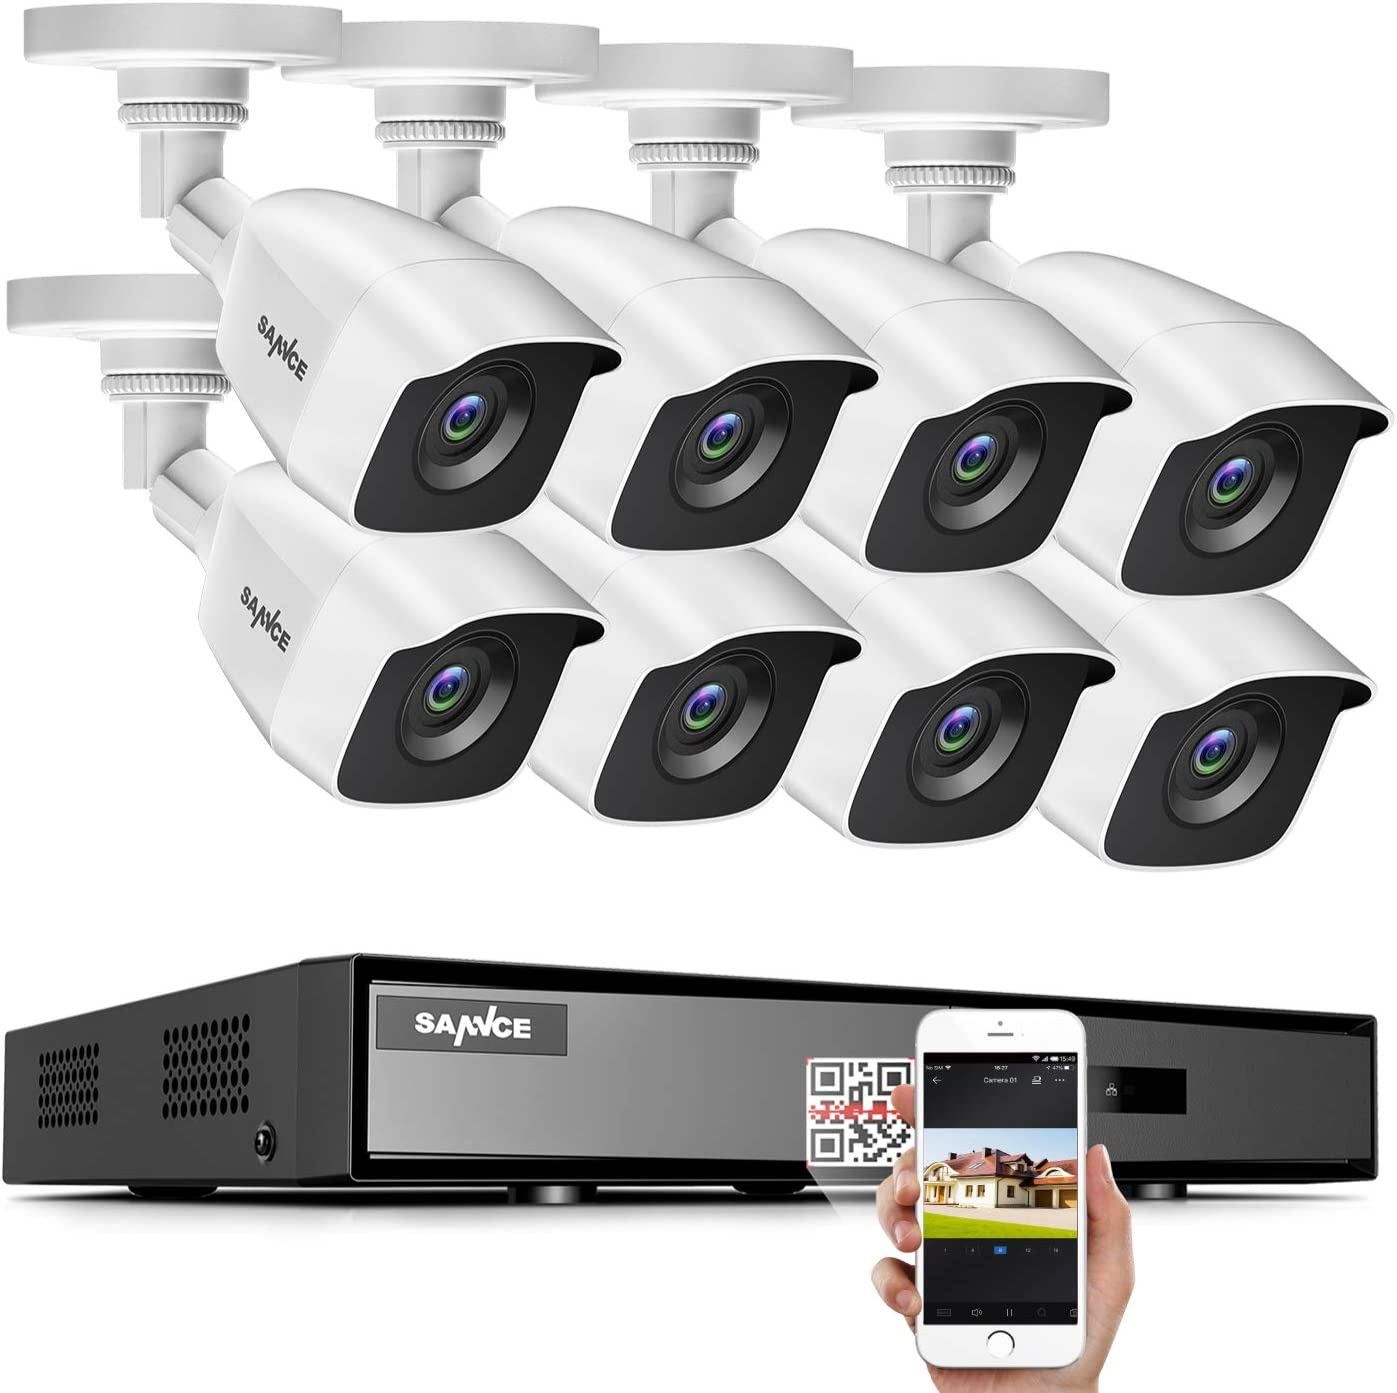 SANNCE 8CH 1080N Home Surveillance Camera System and (8) 1080P TVI Weatherproof CCTV Cameras, Infrared Superior Night Vision, P2P & QR Code Scan Remote Access, Wired Security Camera System (NO HDD)